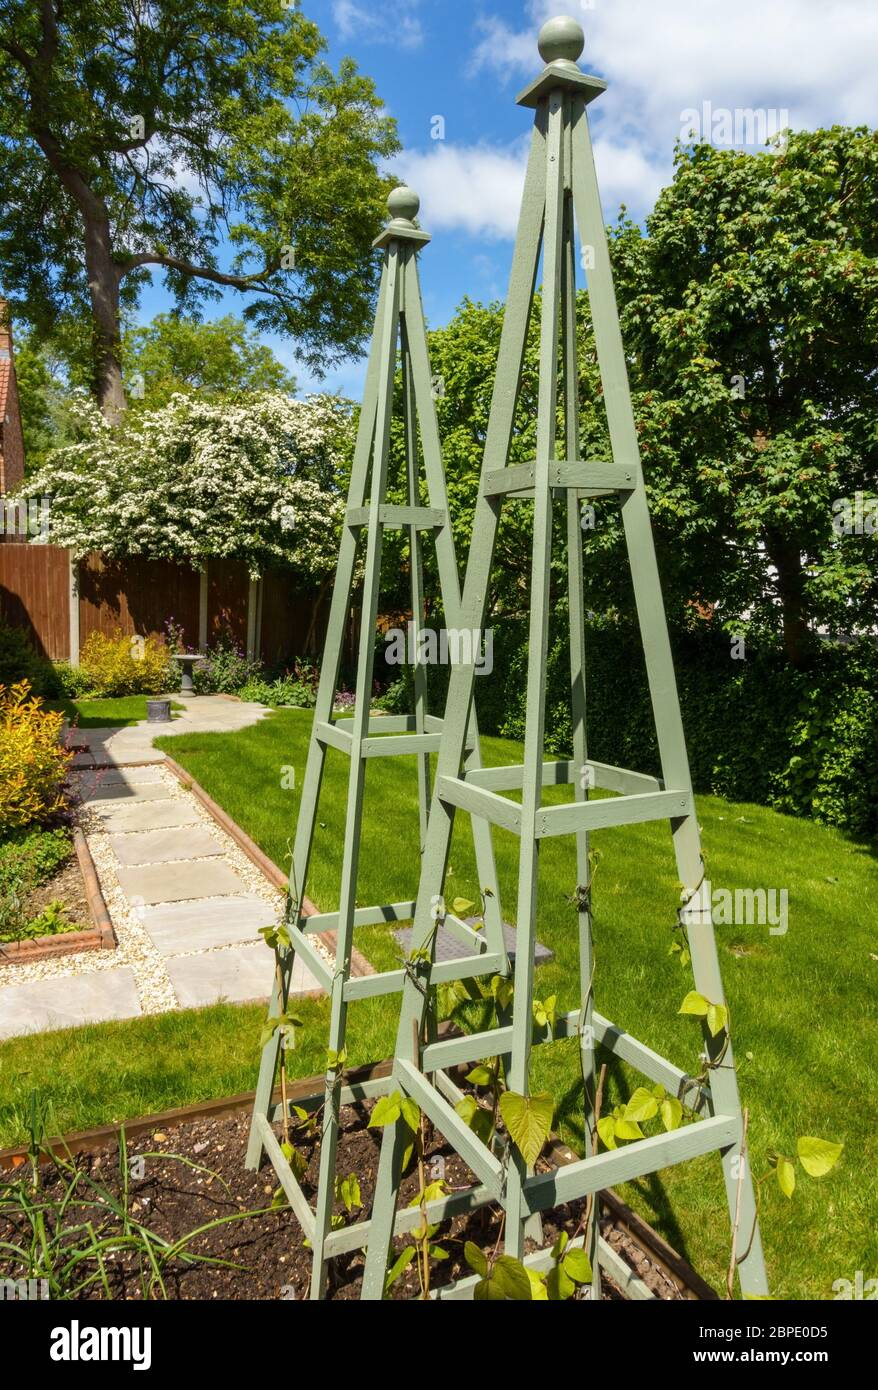 Garden Obelisk High Resolution Stock Photography And Images Alamy